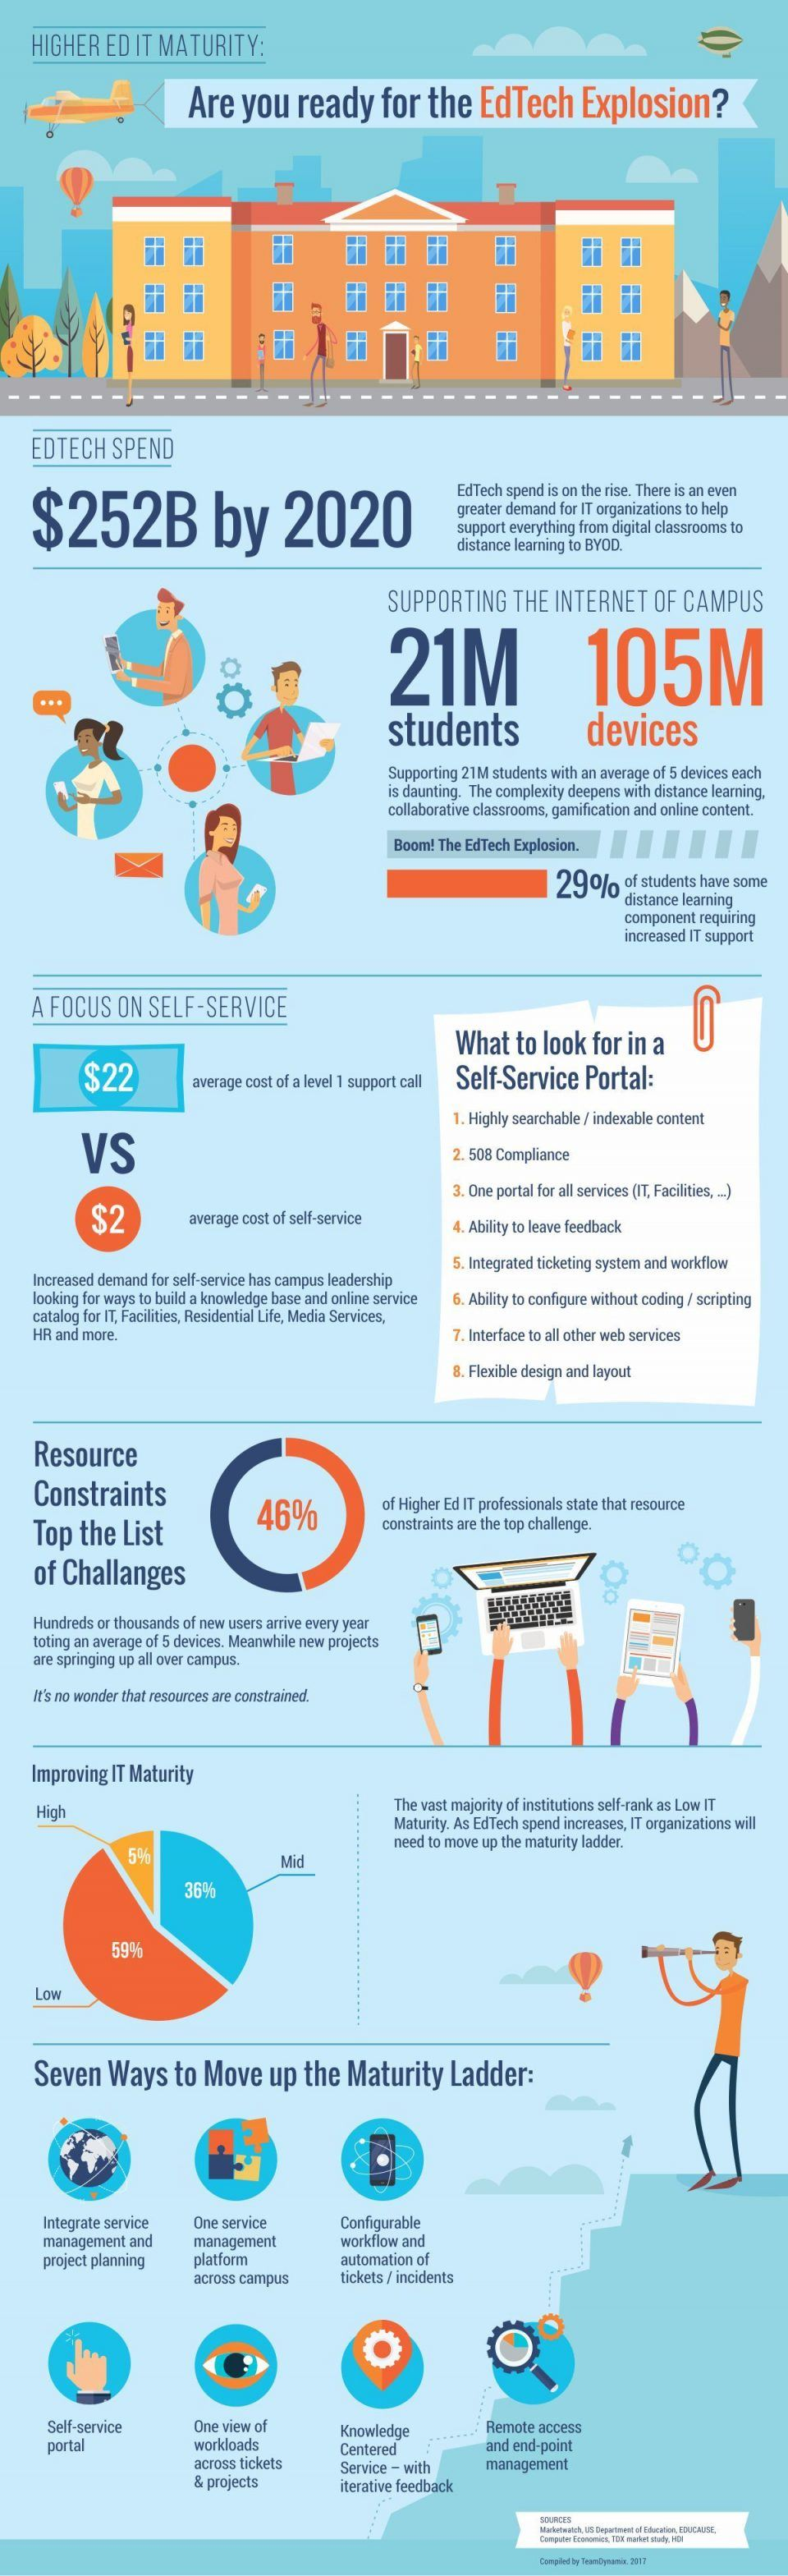 Are You Ready for the EdTech Explosion? Infographic